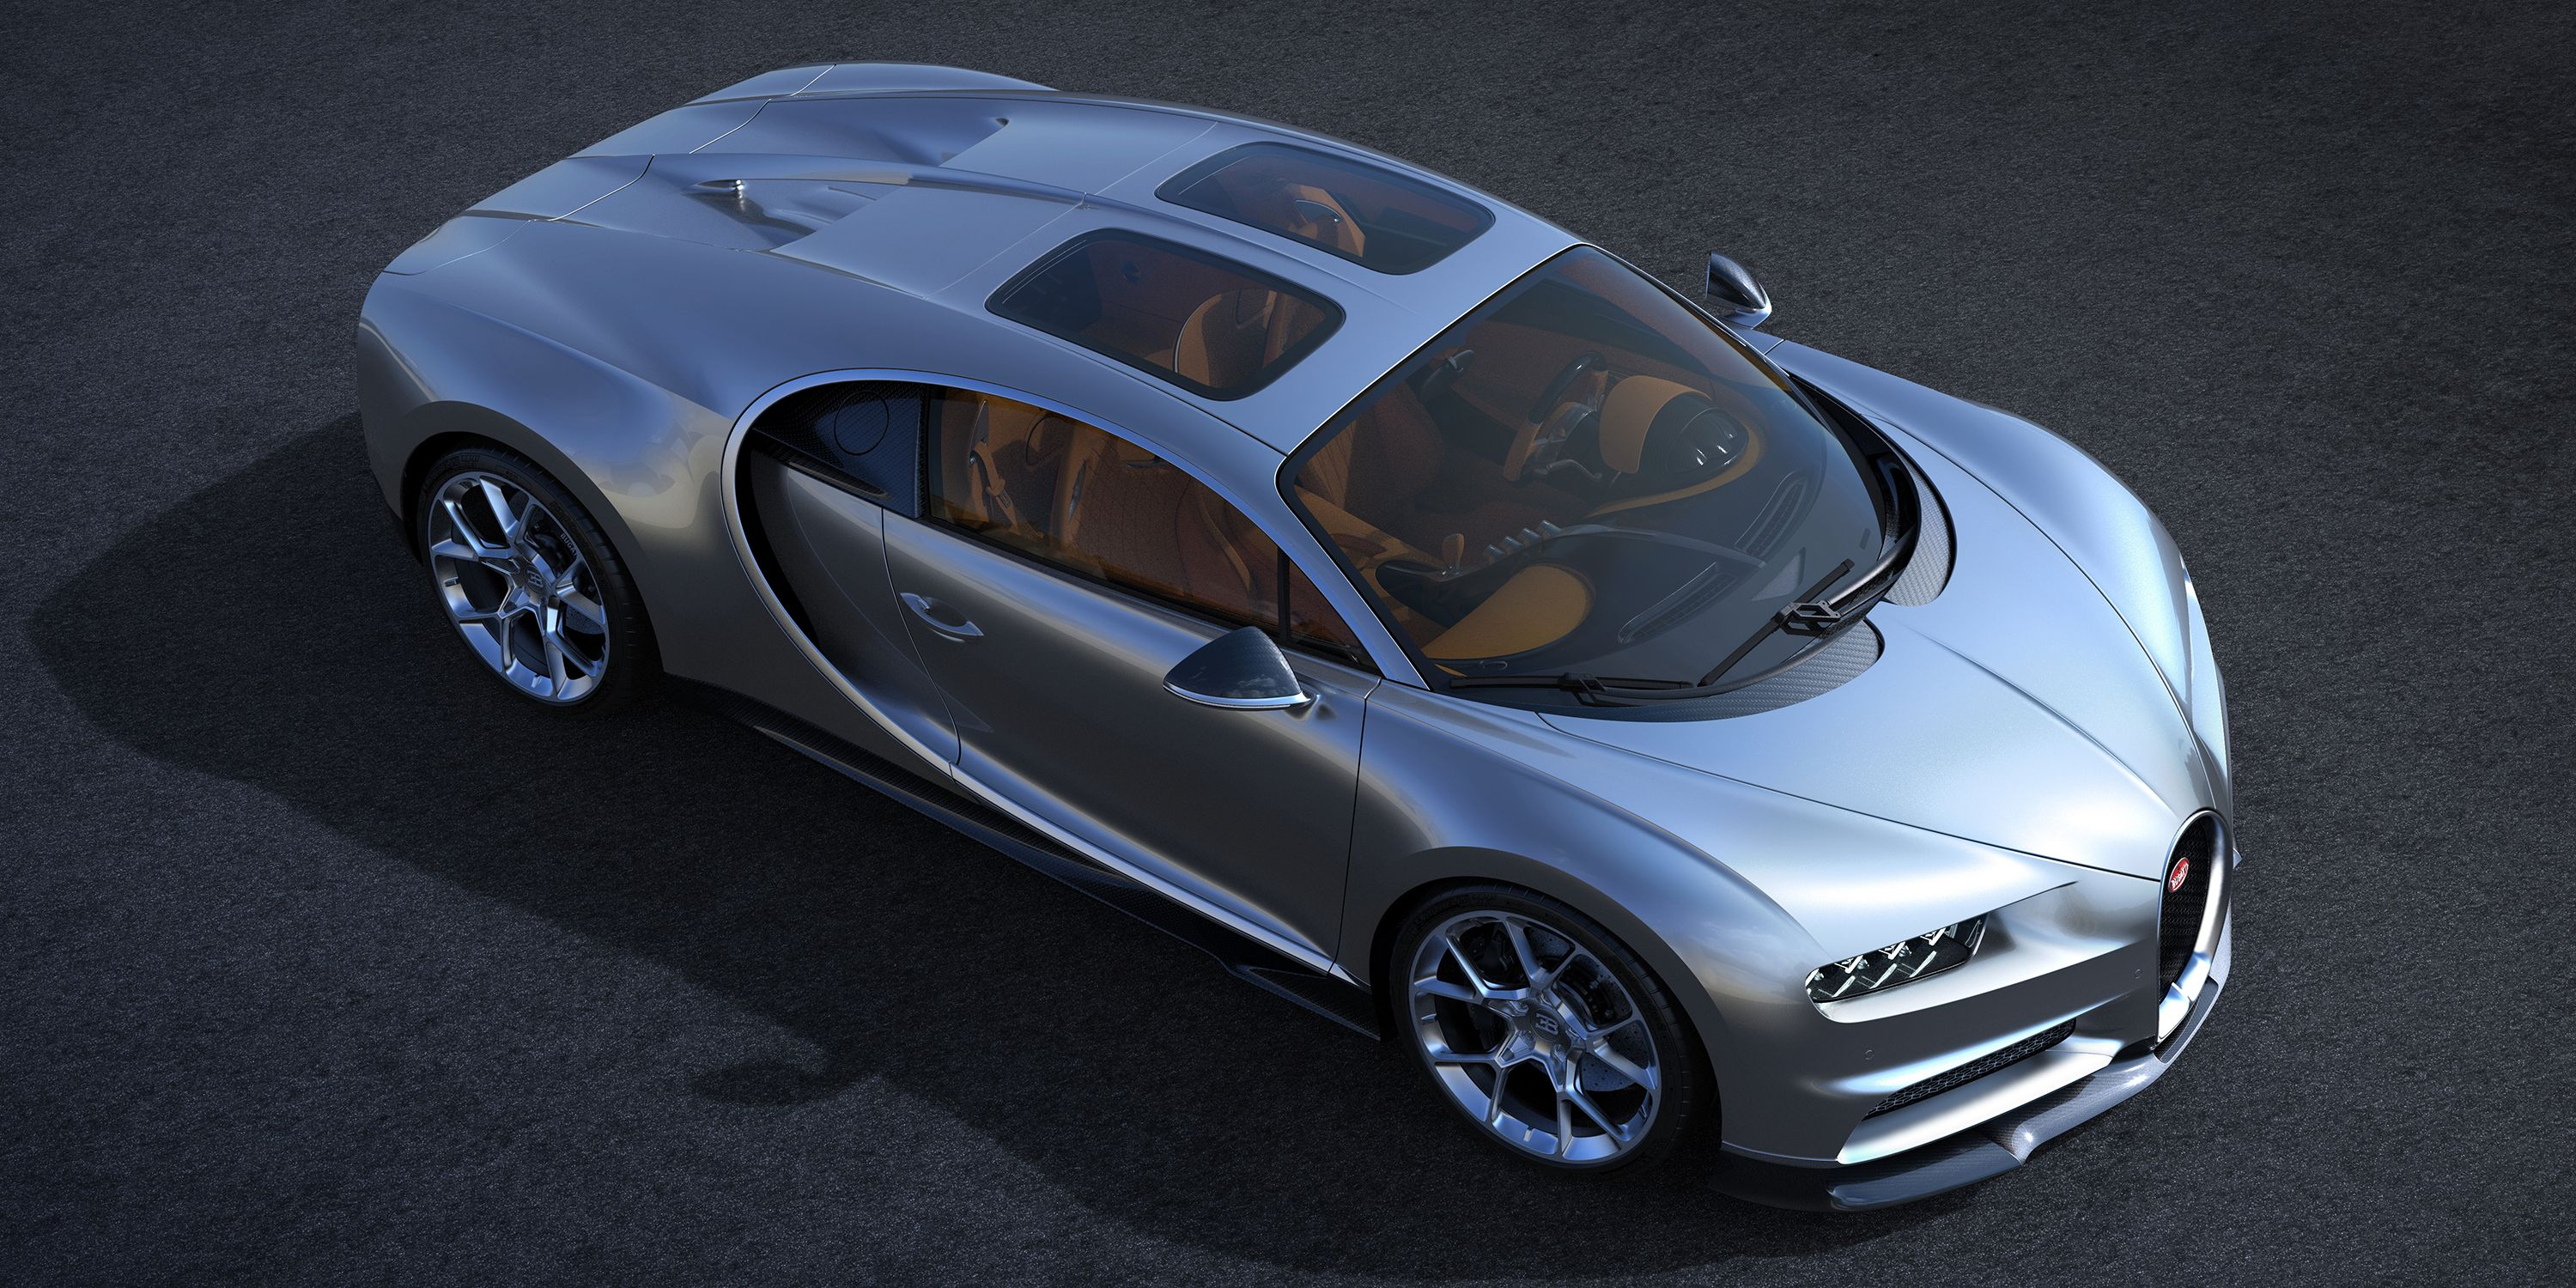 bugatti made fancy glass roof panels for the chiron